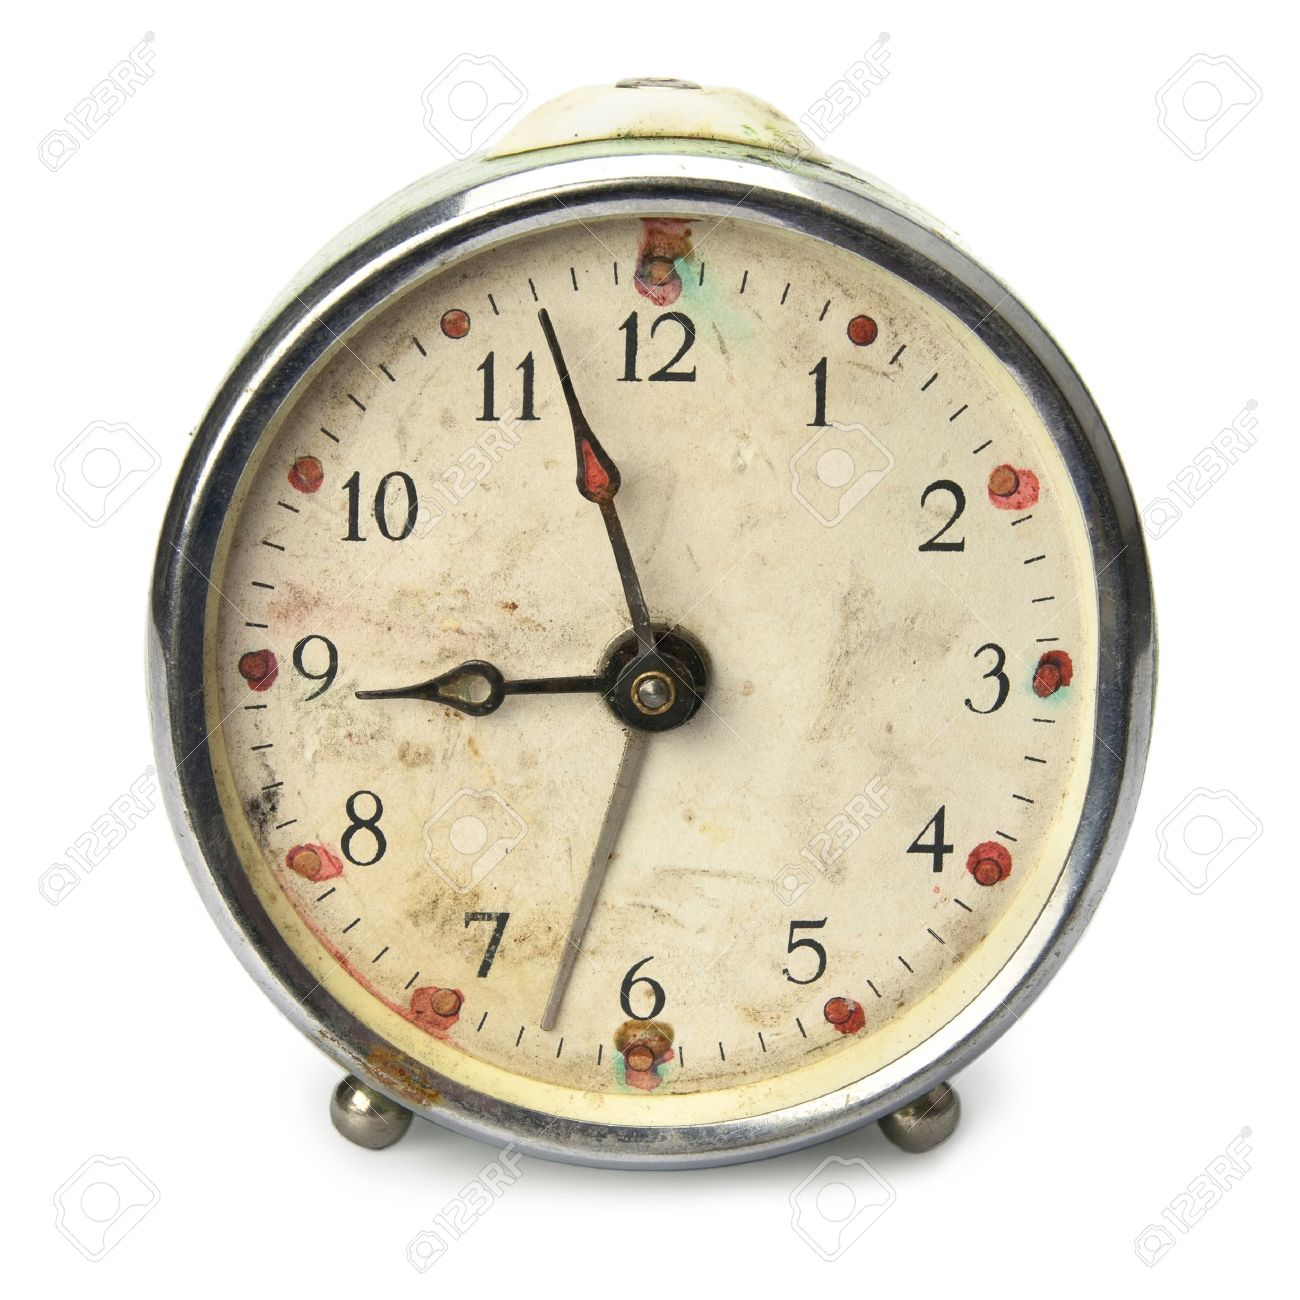 old broken vintage alarm clock isolated on white stock photo